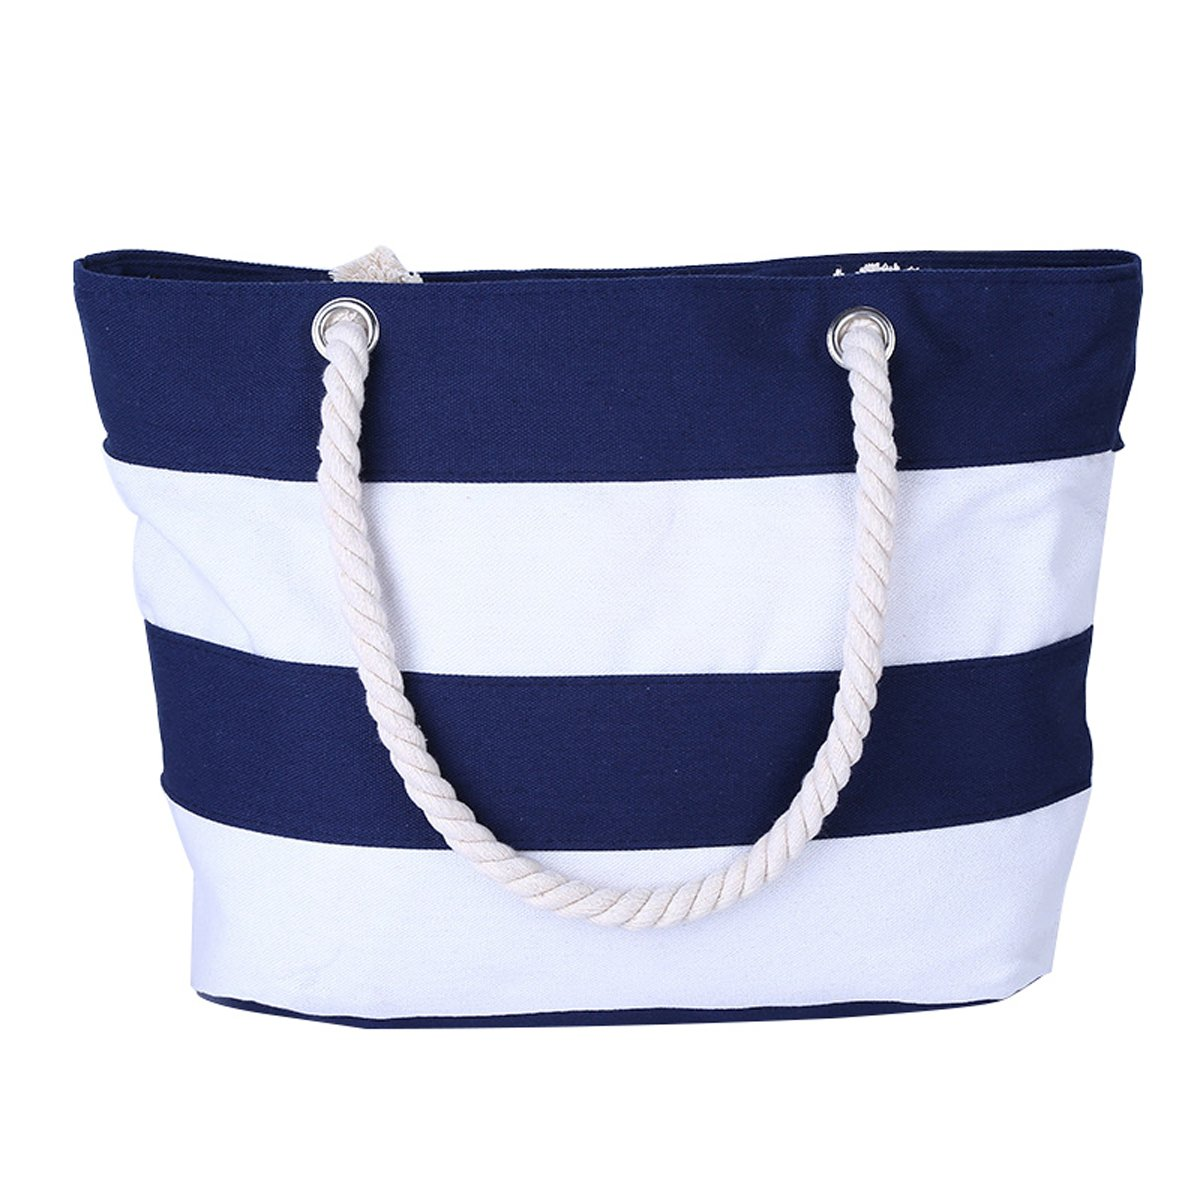 Cotton Canvas Tote Beach Bag With Zipper Top Handle Handbag Shoulder Bags Shopping Bag from Nevenka (Style 1, Blue White)